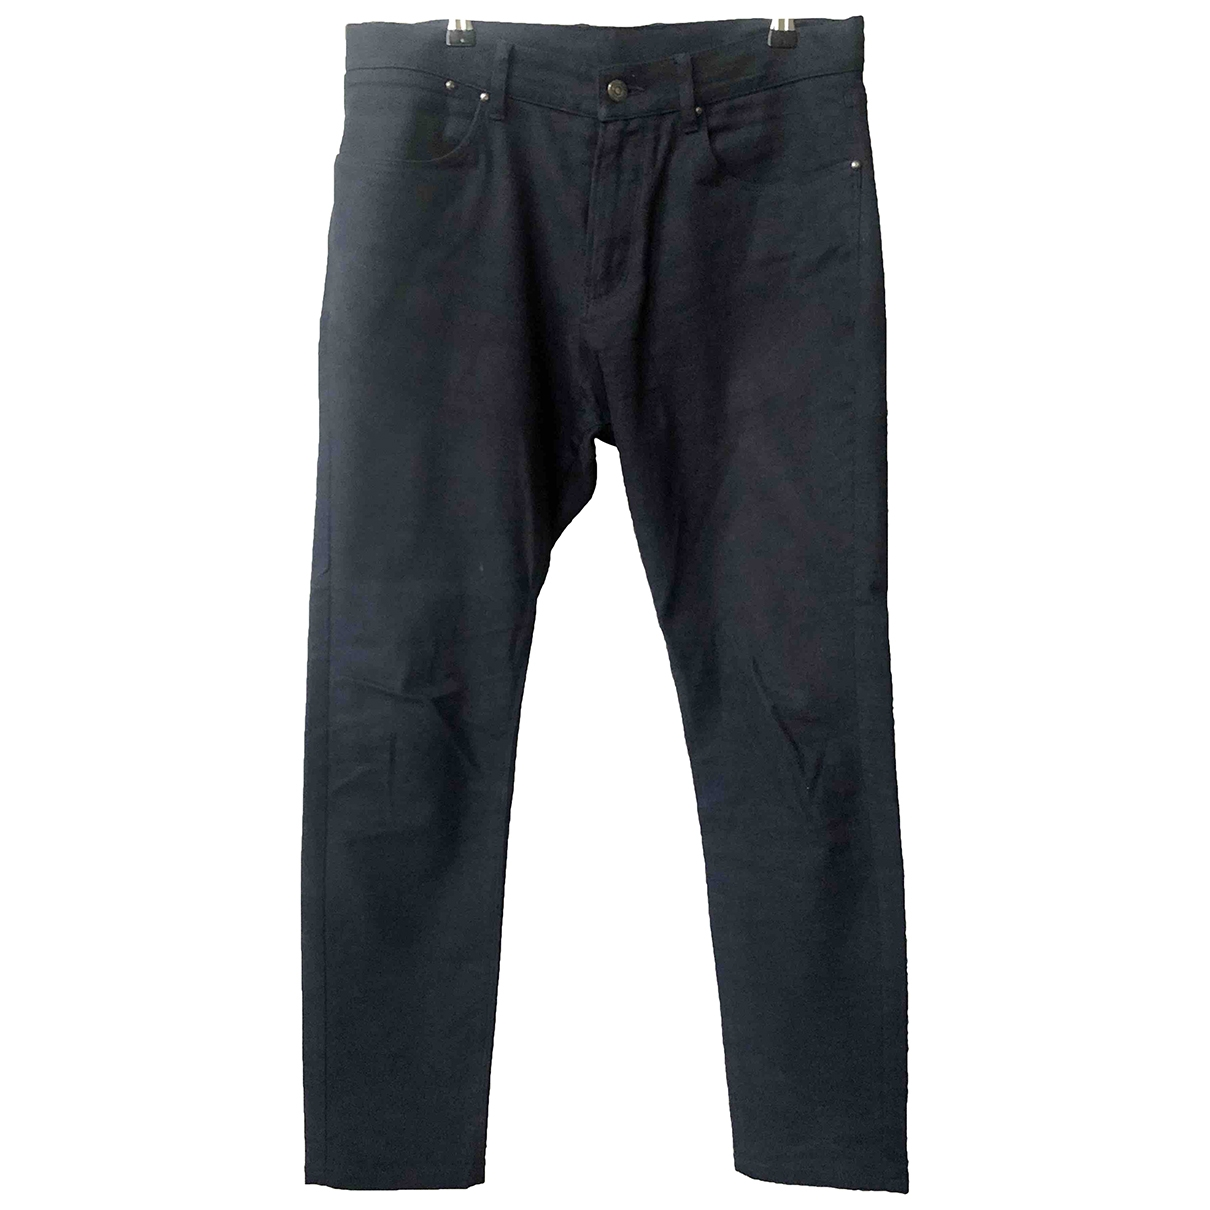 Alfred Dunhill \N Navy Wool Trousers for Men 32 UK - US